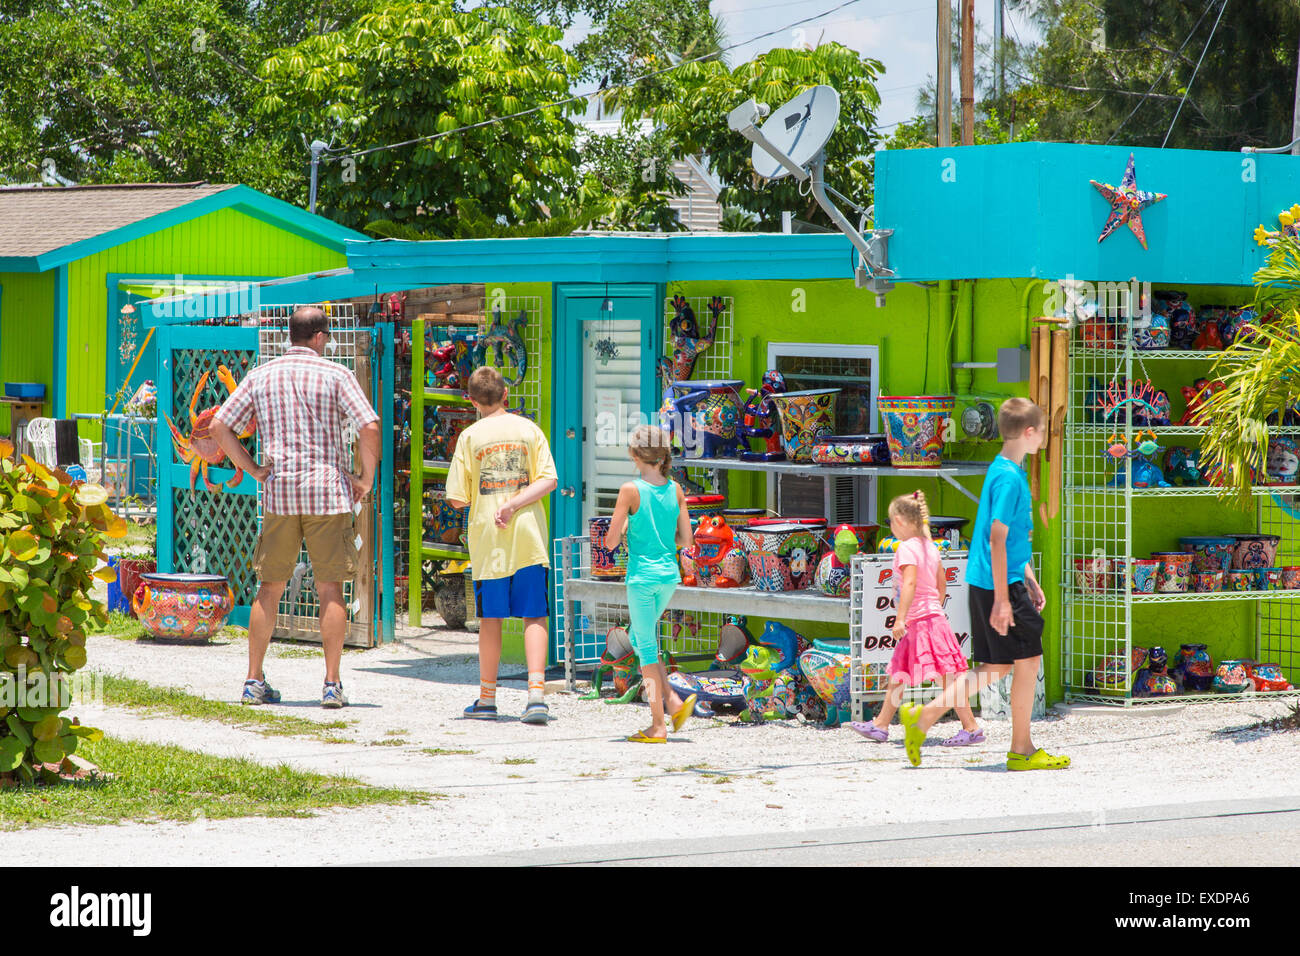 Family shopping in colorful Pine Island area of Matlacha in southwest Florida - Stock Image